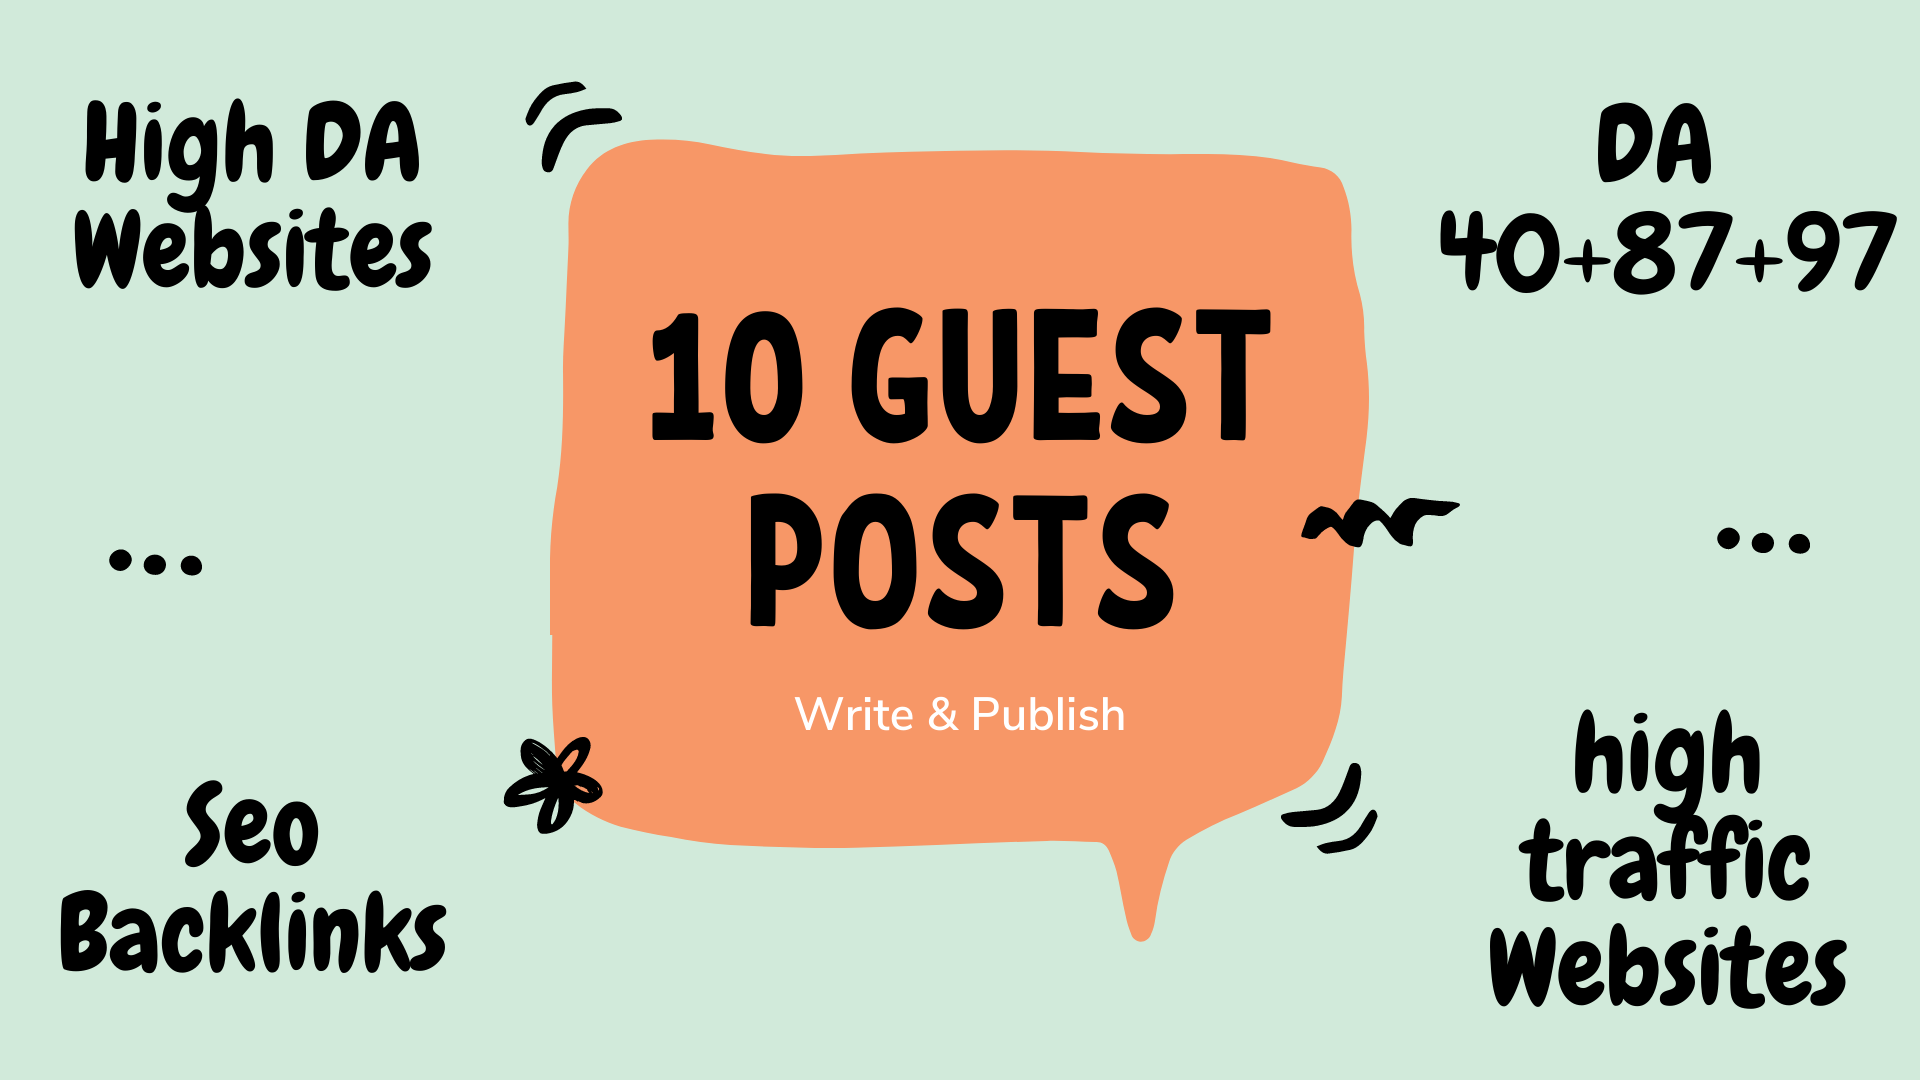 I will write and publish 10 guest posts da 40 to 97